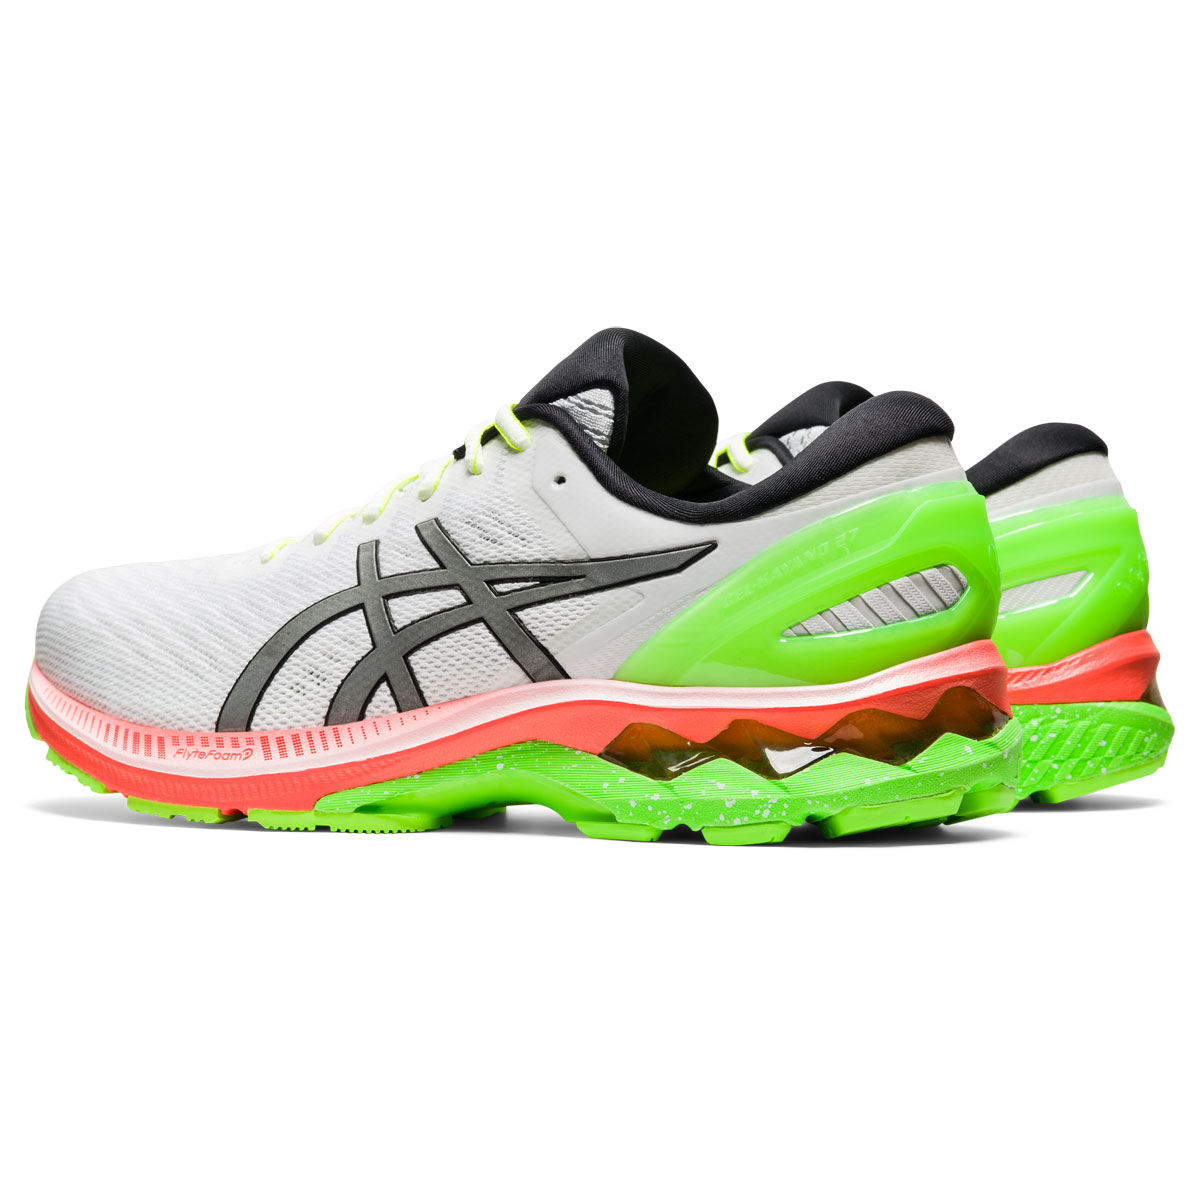 Men's Asics GEL-Kayano 27 Lite-Show Running Shoe - Color: White/Pure Silv (Regular Width) - Size: 6, White/Pure Silver, large, image 4